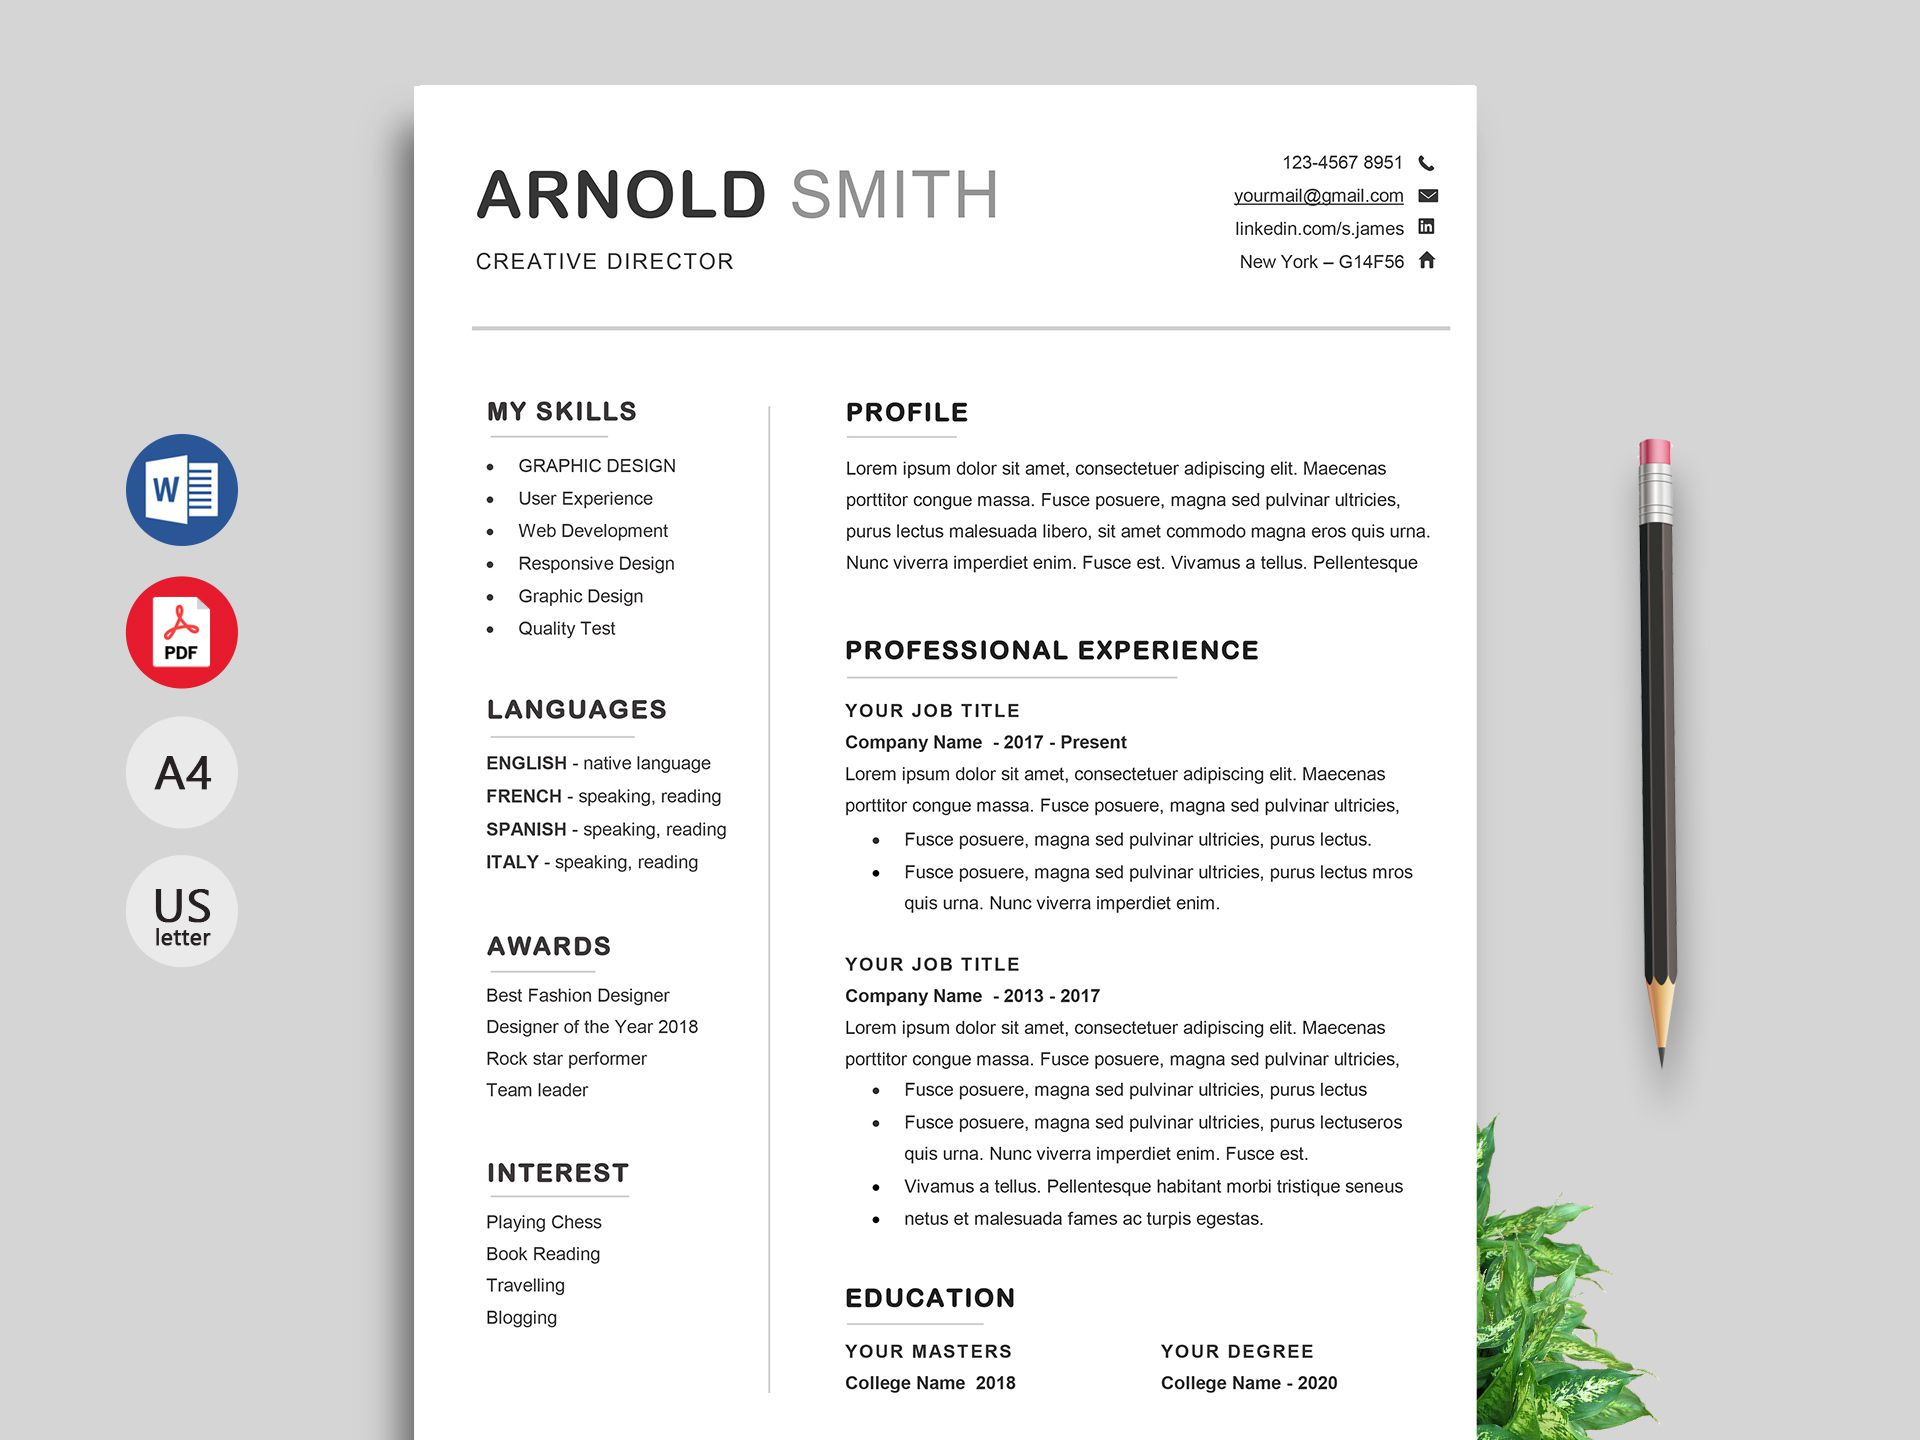 002 Rare Resume Template On Word Highest Quality  2007 Download 2016 How To Get 2010Full